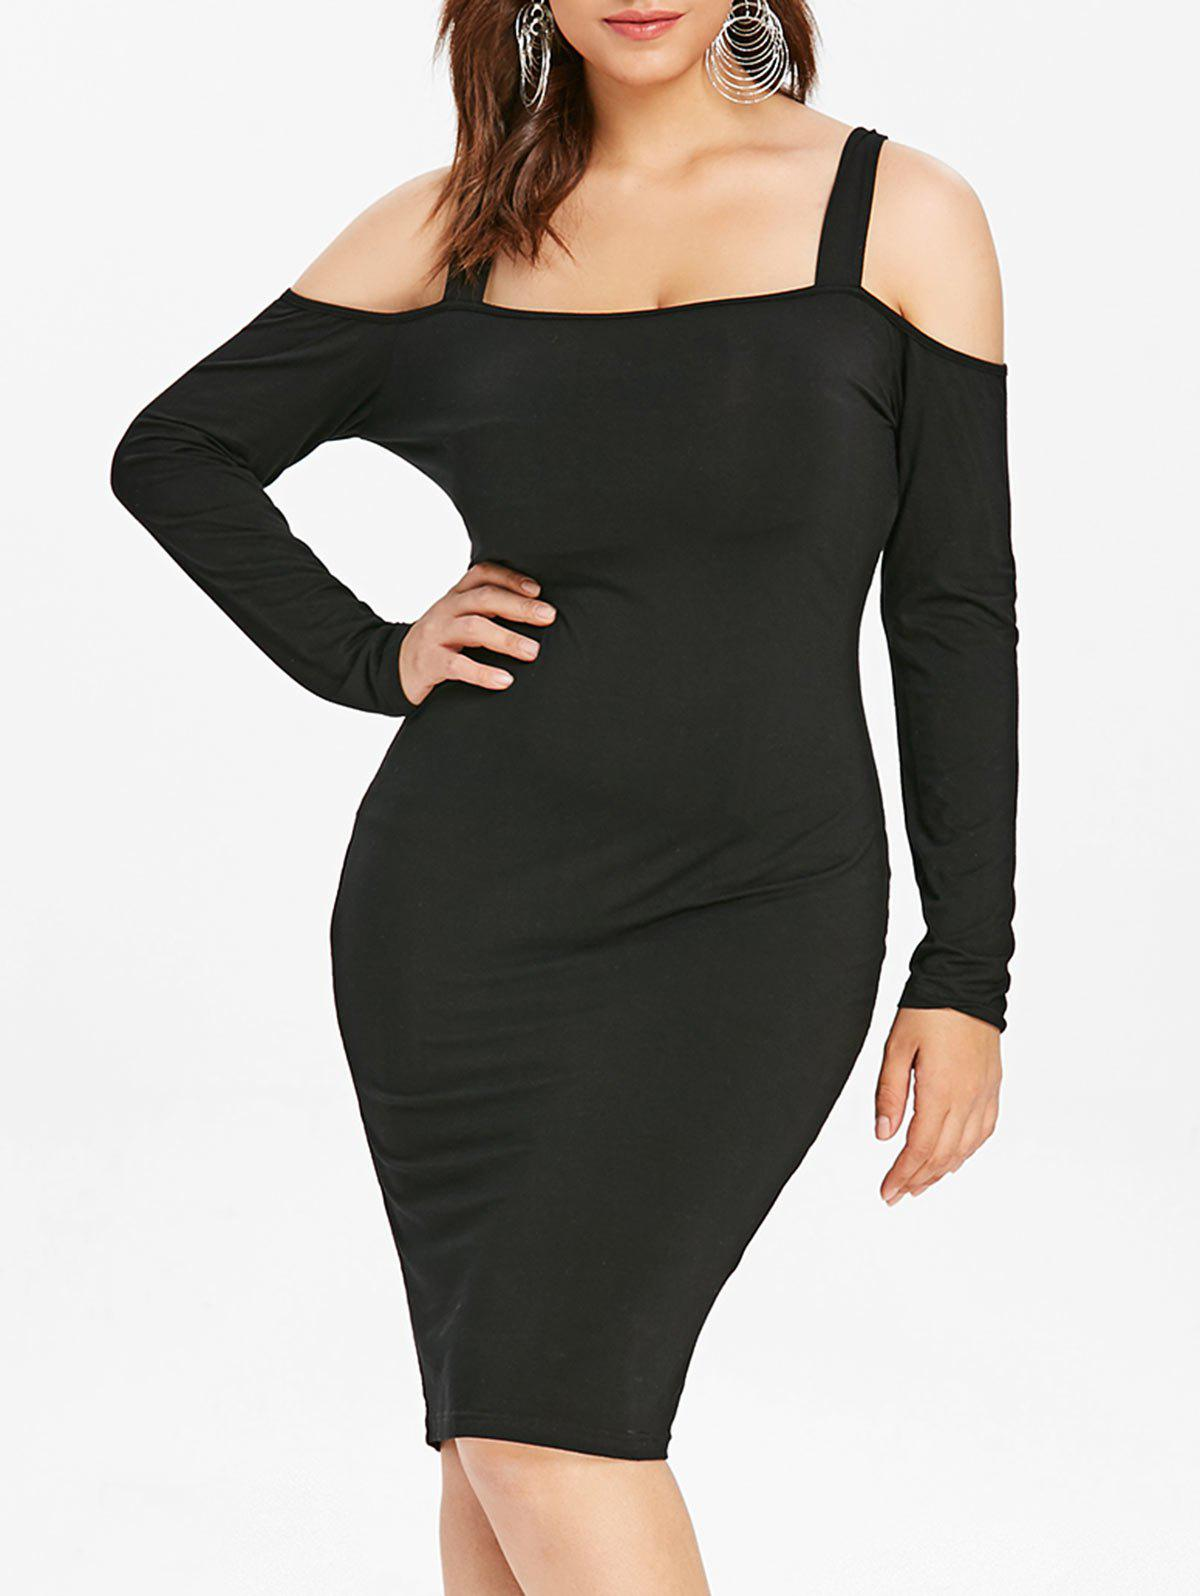 Chic Back Ladder Cut Out Plus Size Bodycon Dress